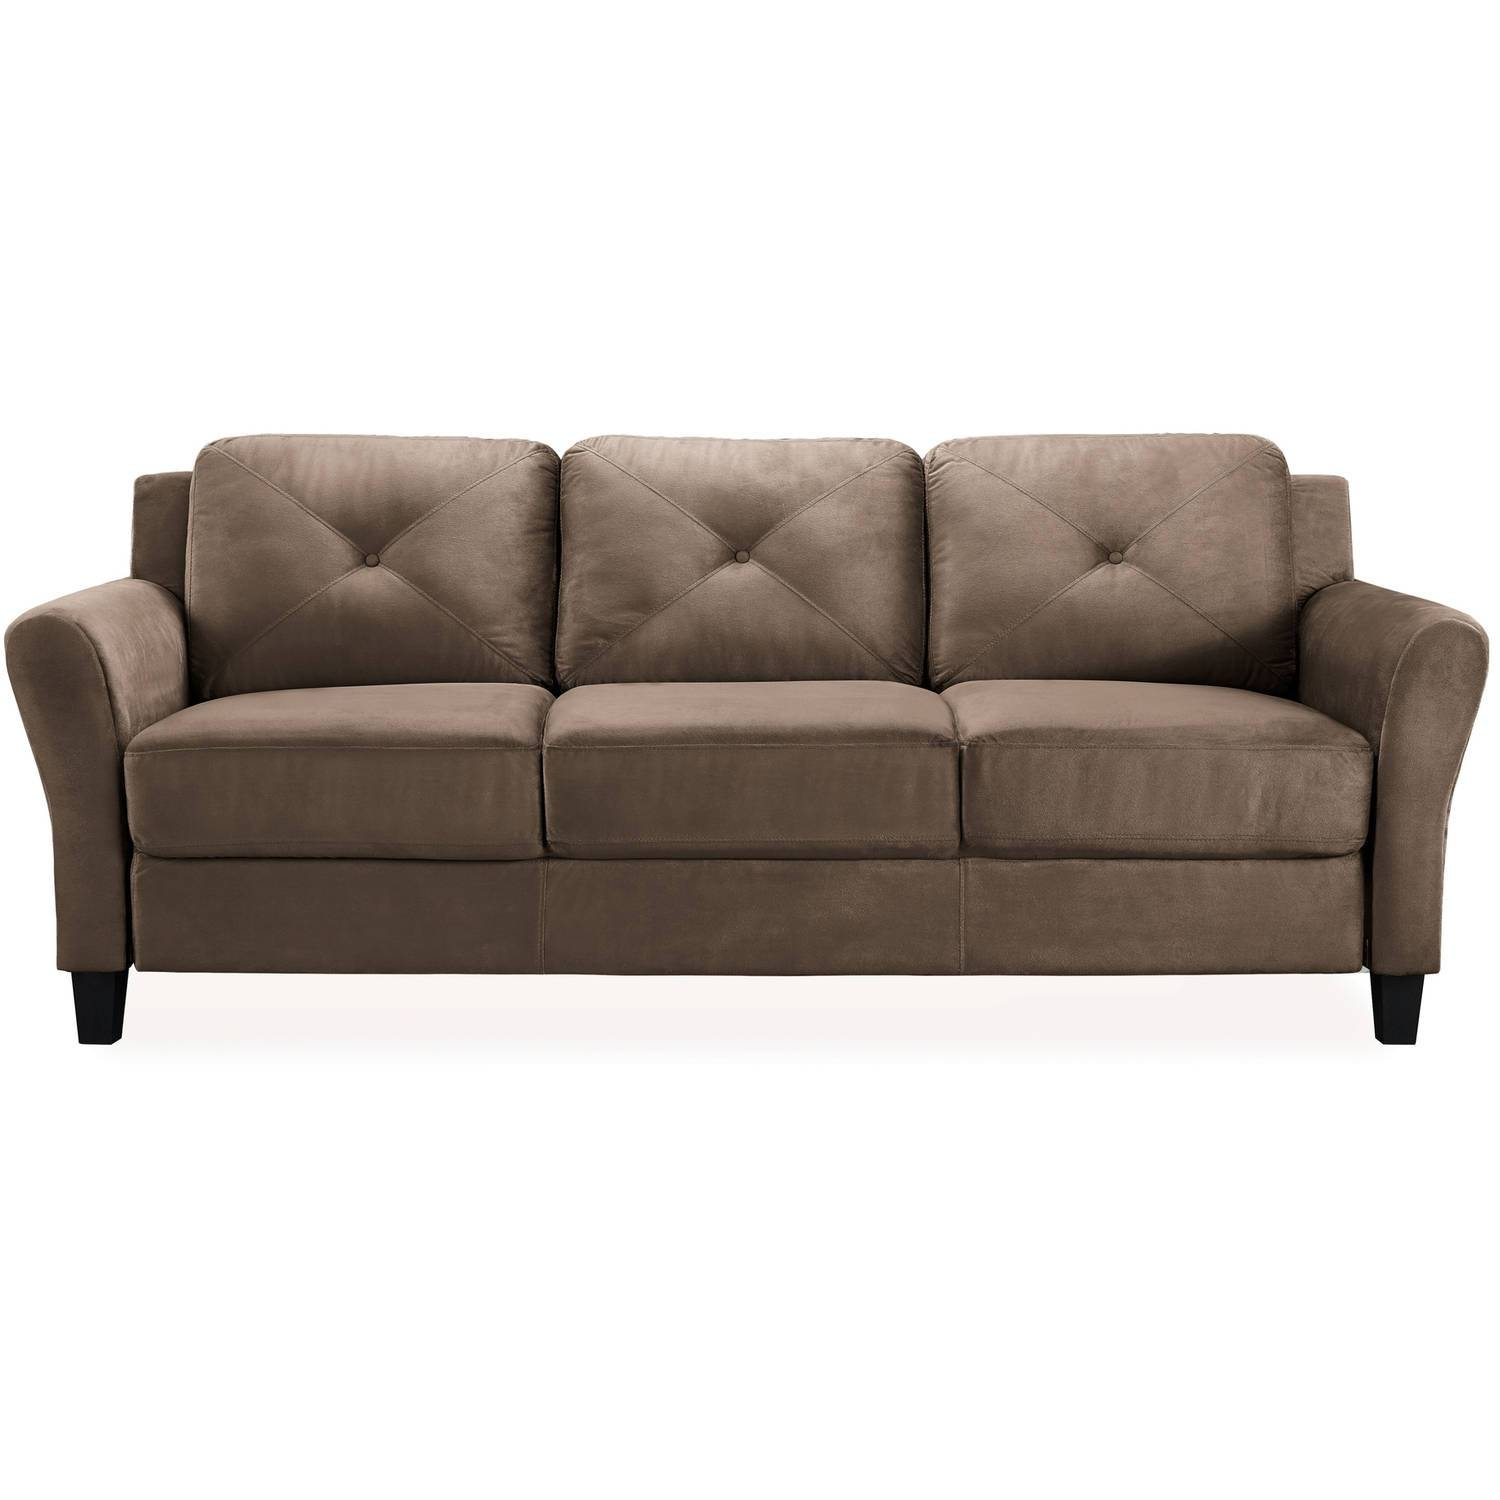 Serta Kingsley Convertible Sofa - Walmart throughout Leather Sofa Beds With Storage (Image 20 of 30)